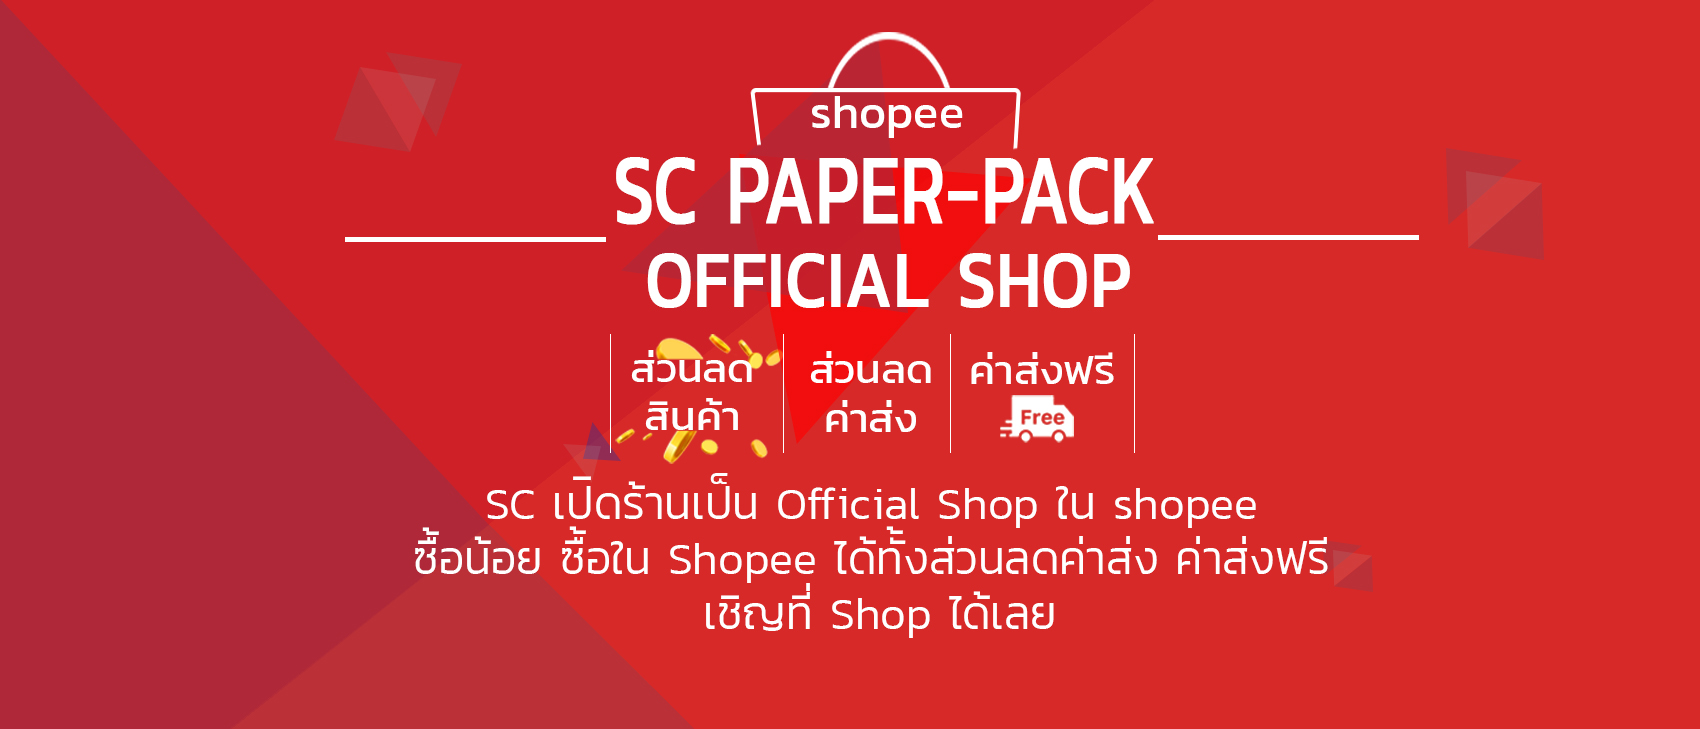 OFFICIAL SHOP SHOPEE